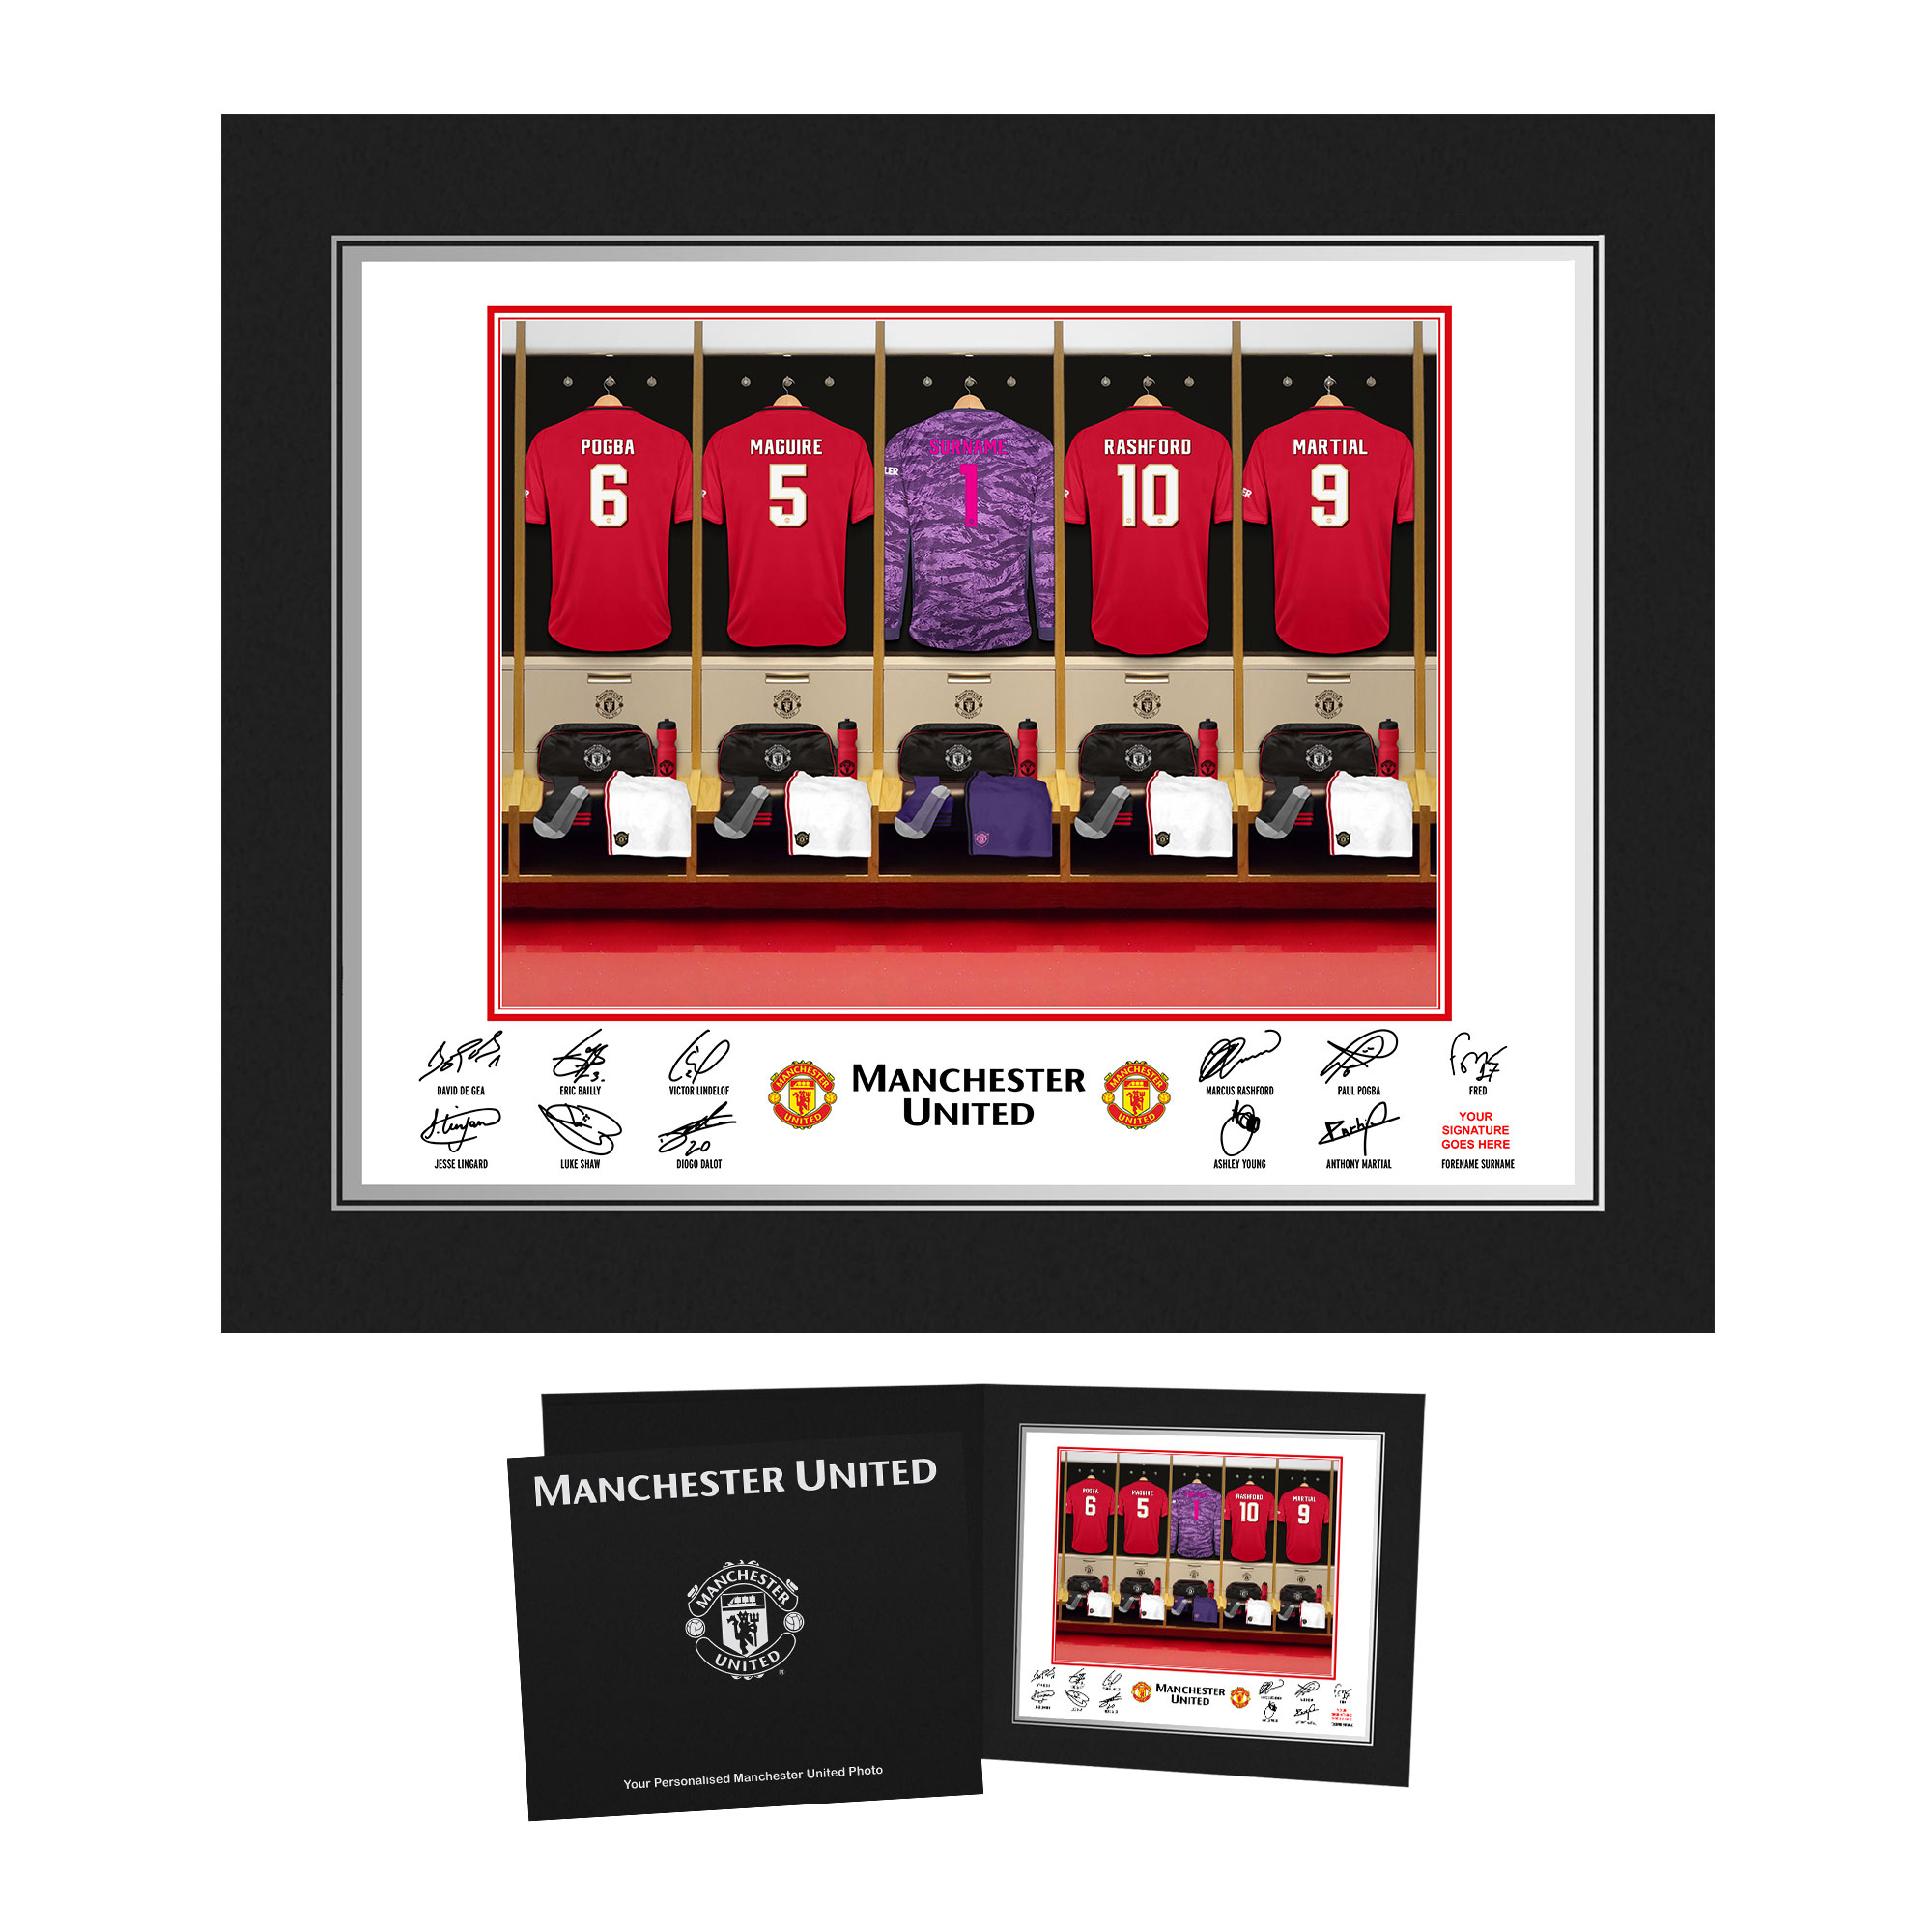 MUFC Goalkeeper Dressing Room Photo Folder